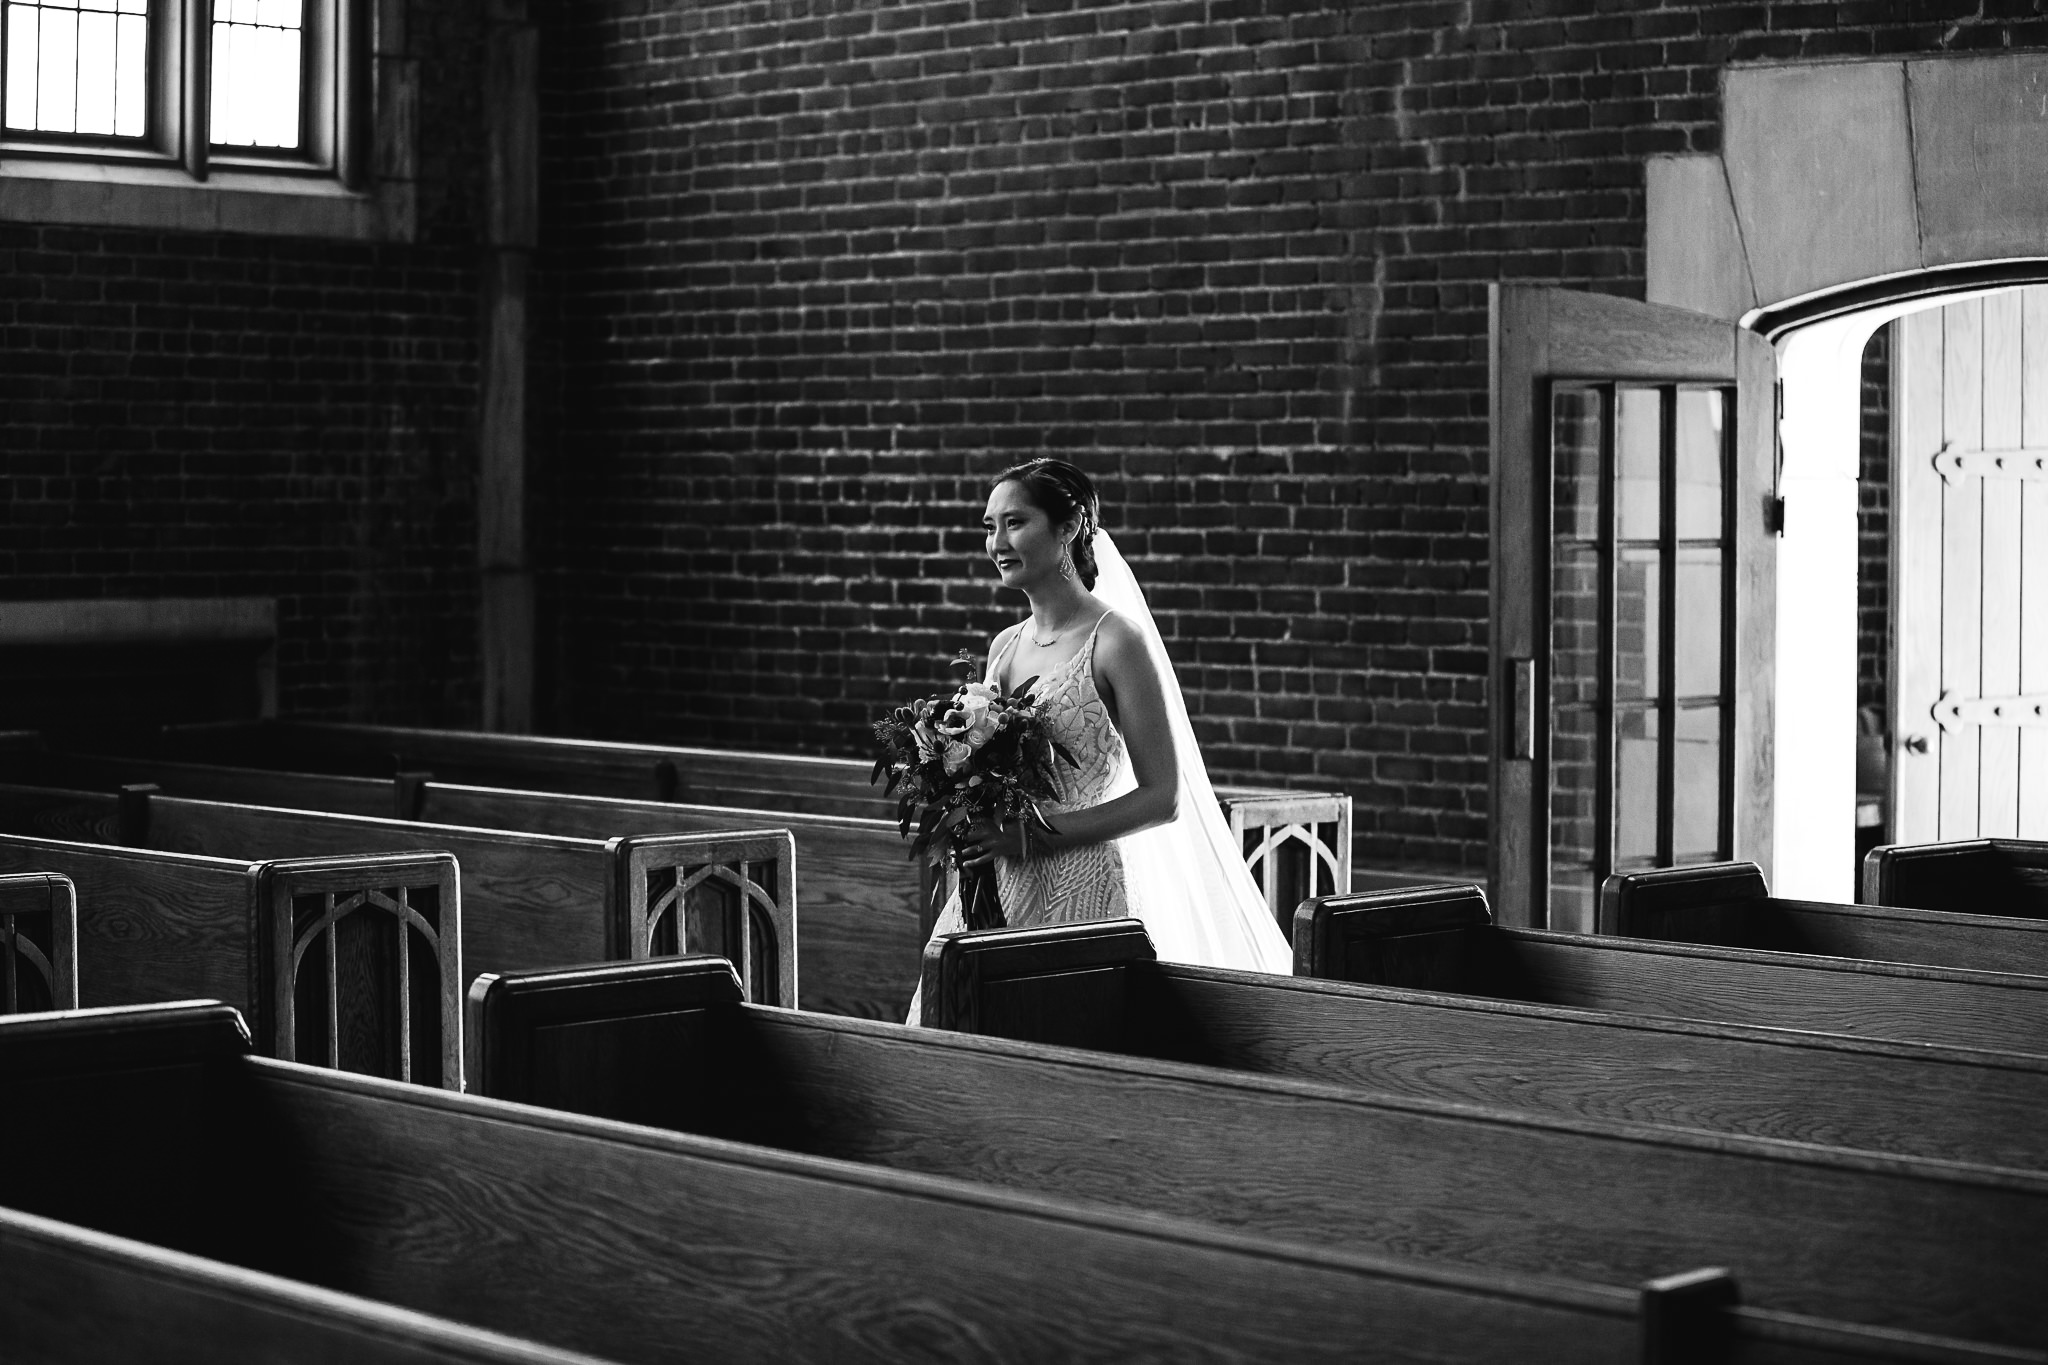 chattanooga-wedding-photographers-thewarmtharoundyou-waterhouse-pavilion-patten-chapel-wedding-sam-dusty (24 of 99).jpg